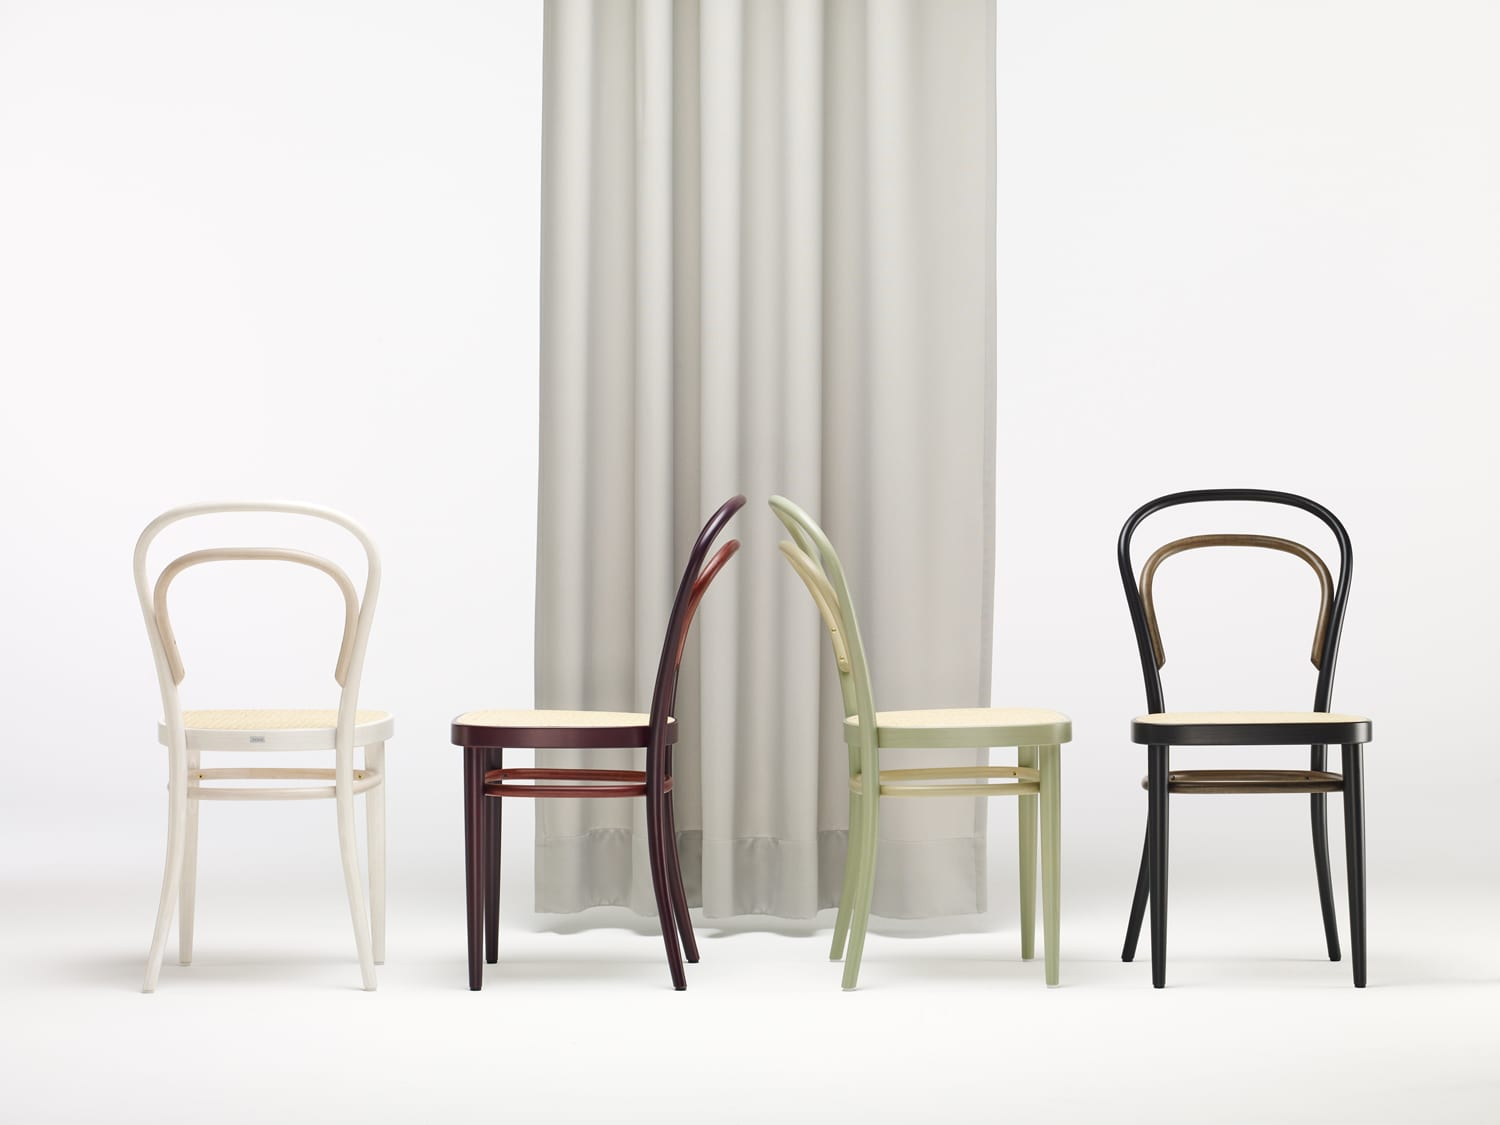 Besau Marguerre for Thonet at Imm Cologne 2019   Yellowtrace